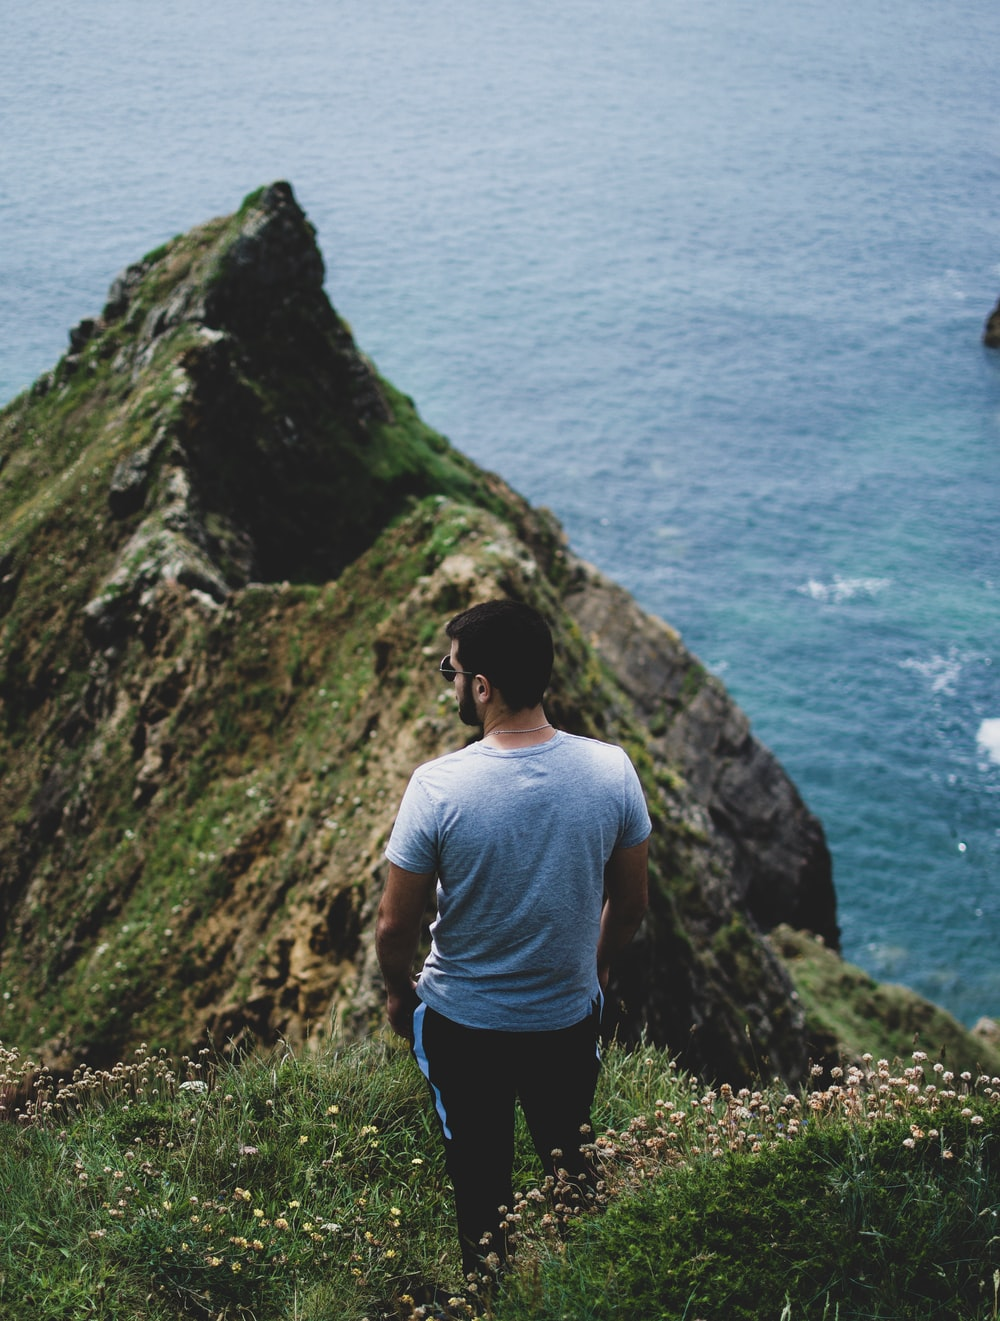 man standing near cliff while facing body of water at daytime